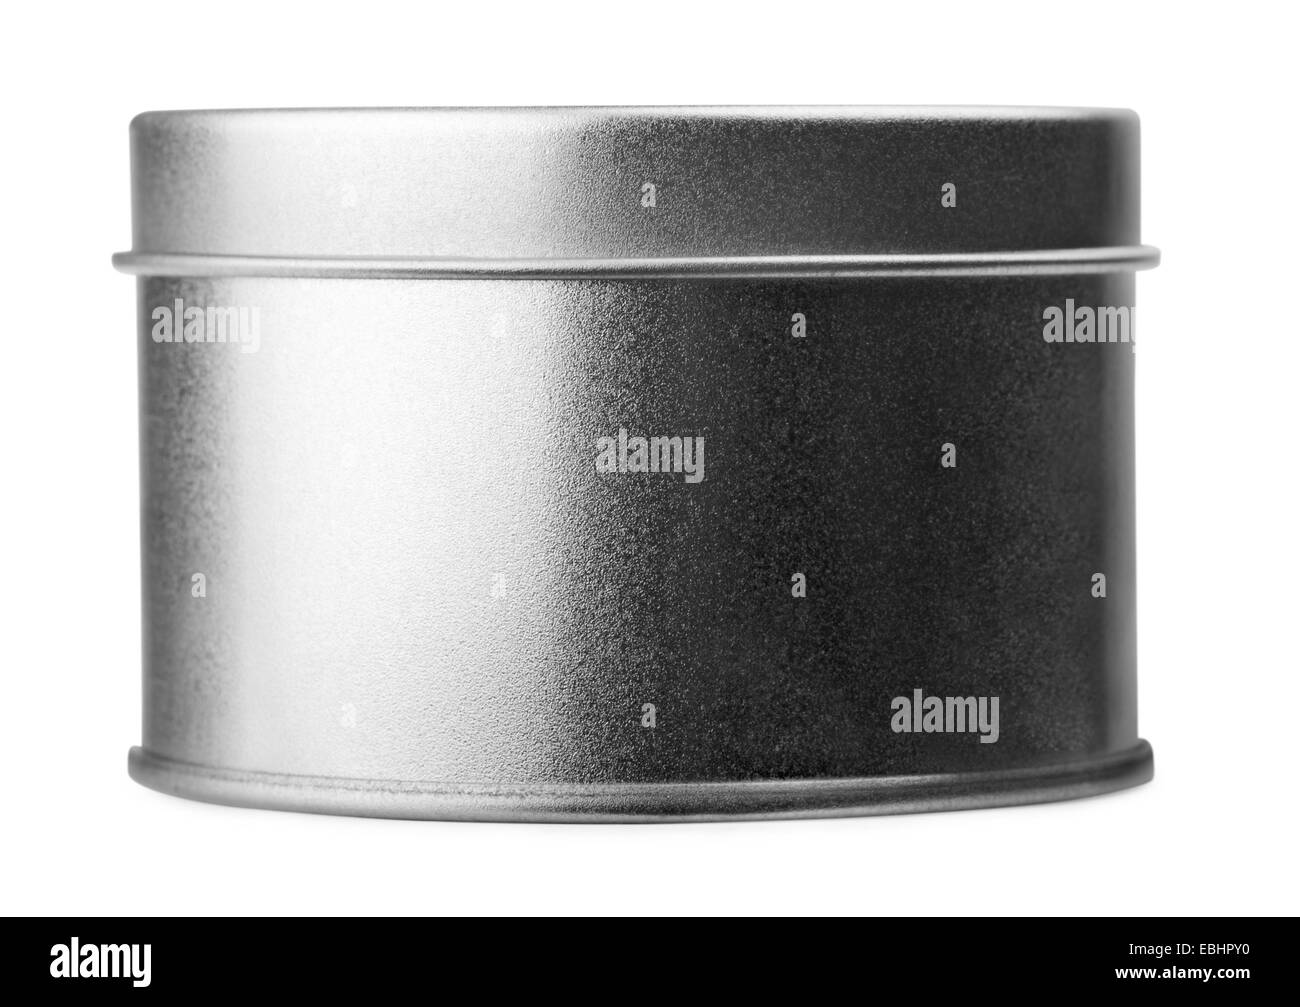 Round metal container on a white background - Stock Image